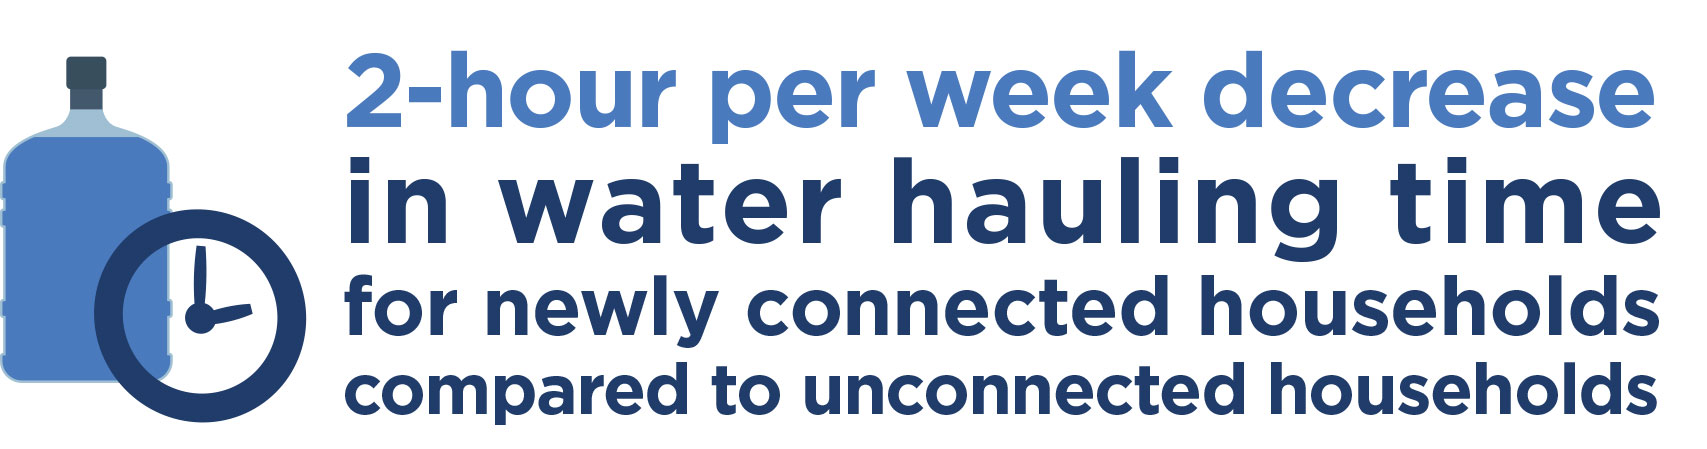 2-hour per week decrease in water hauling time.